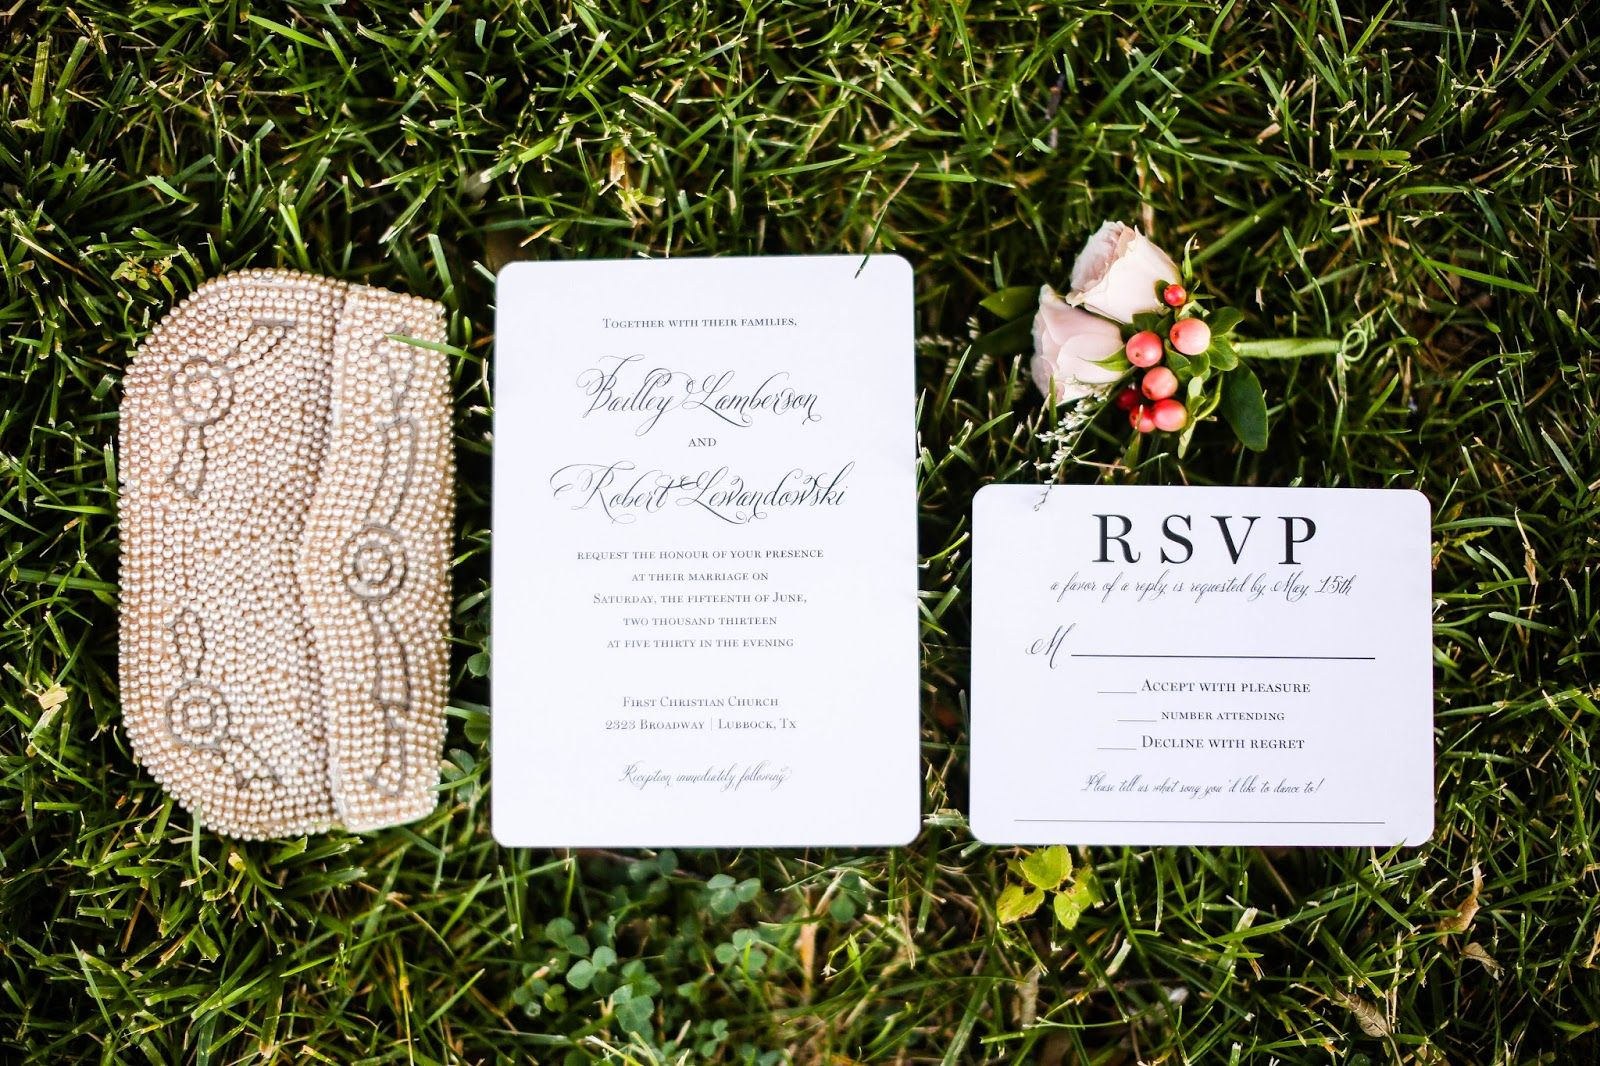 Wedding details. Invitations, vintage clutch and boutineer.